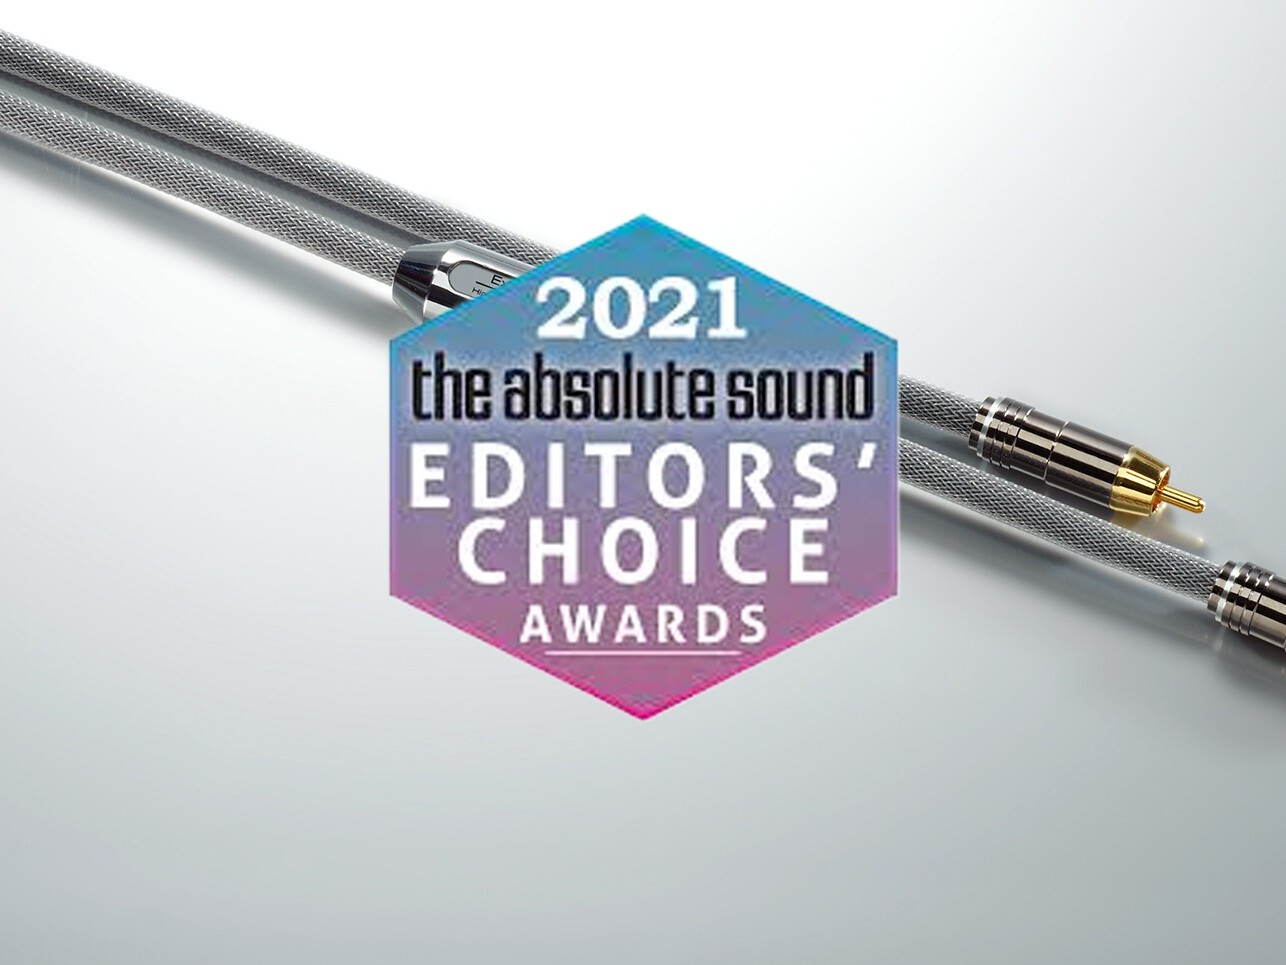 The Absolute Sound Editor's Choice Award for the Explorer 90i and 90L